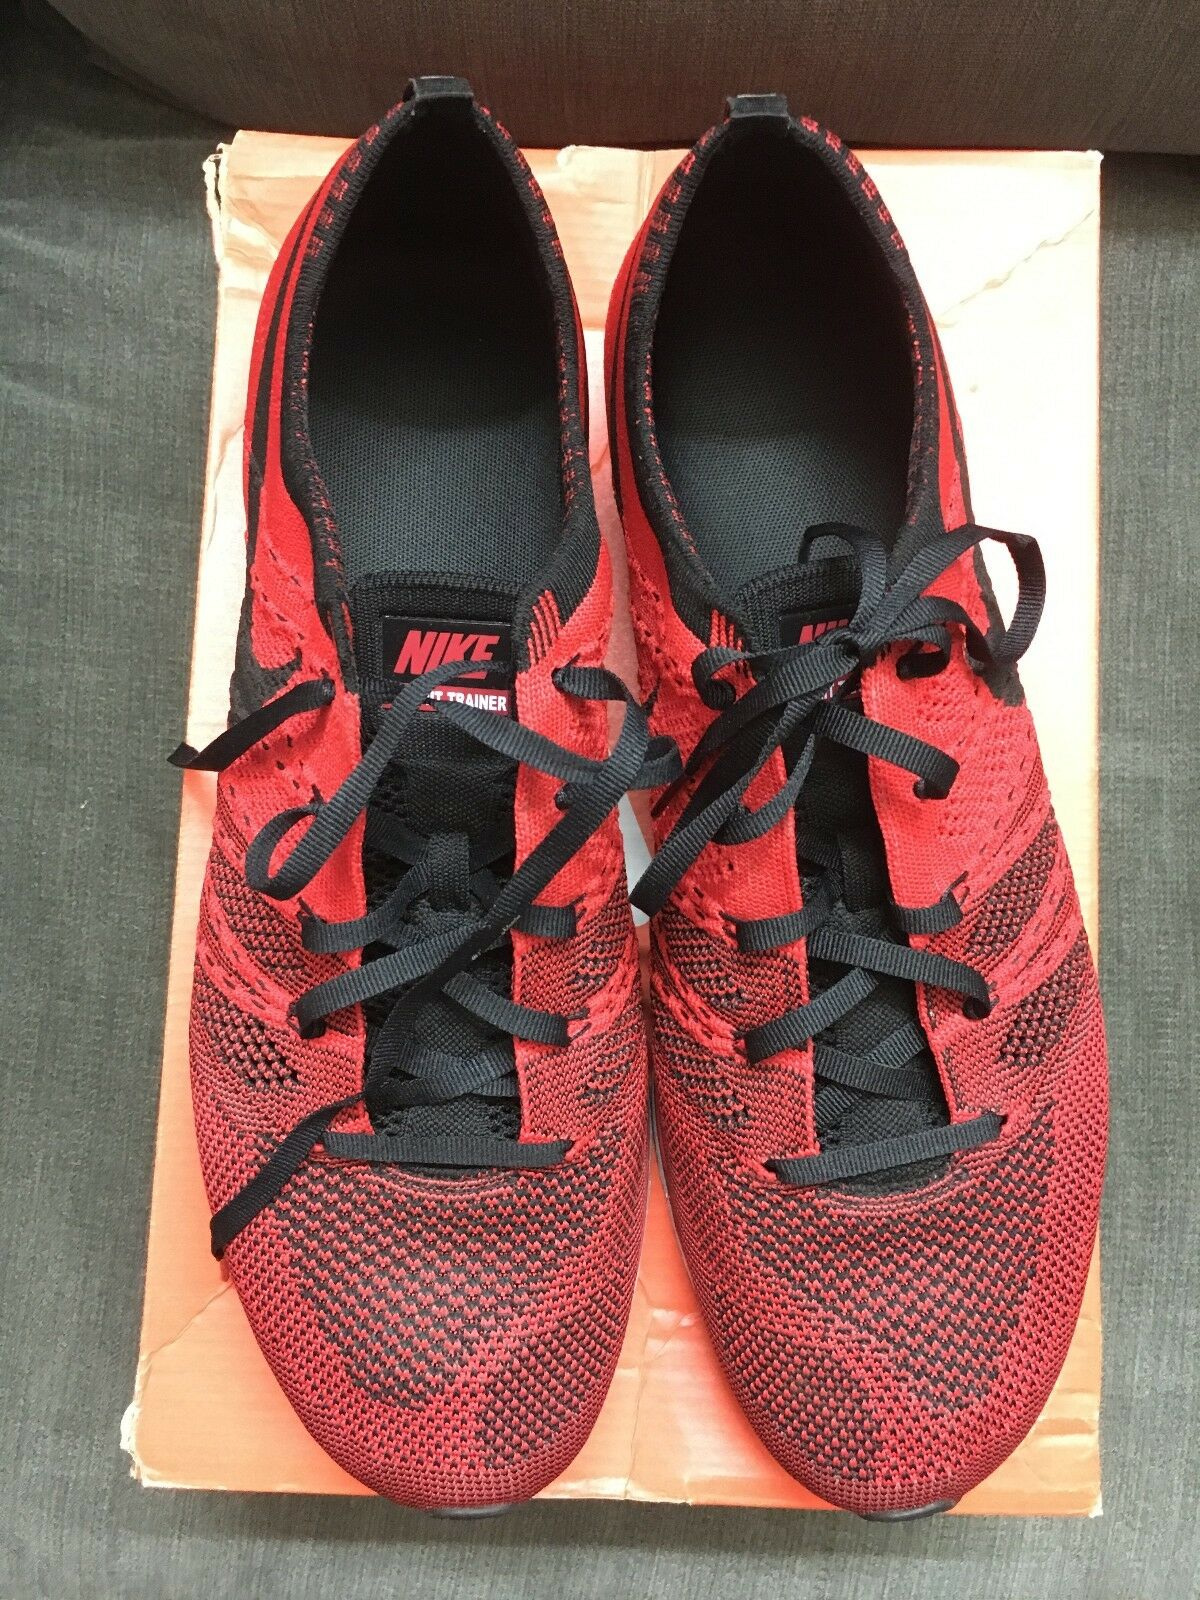 NIKE Flyknit Trainer University Red 532948 610 Size 11